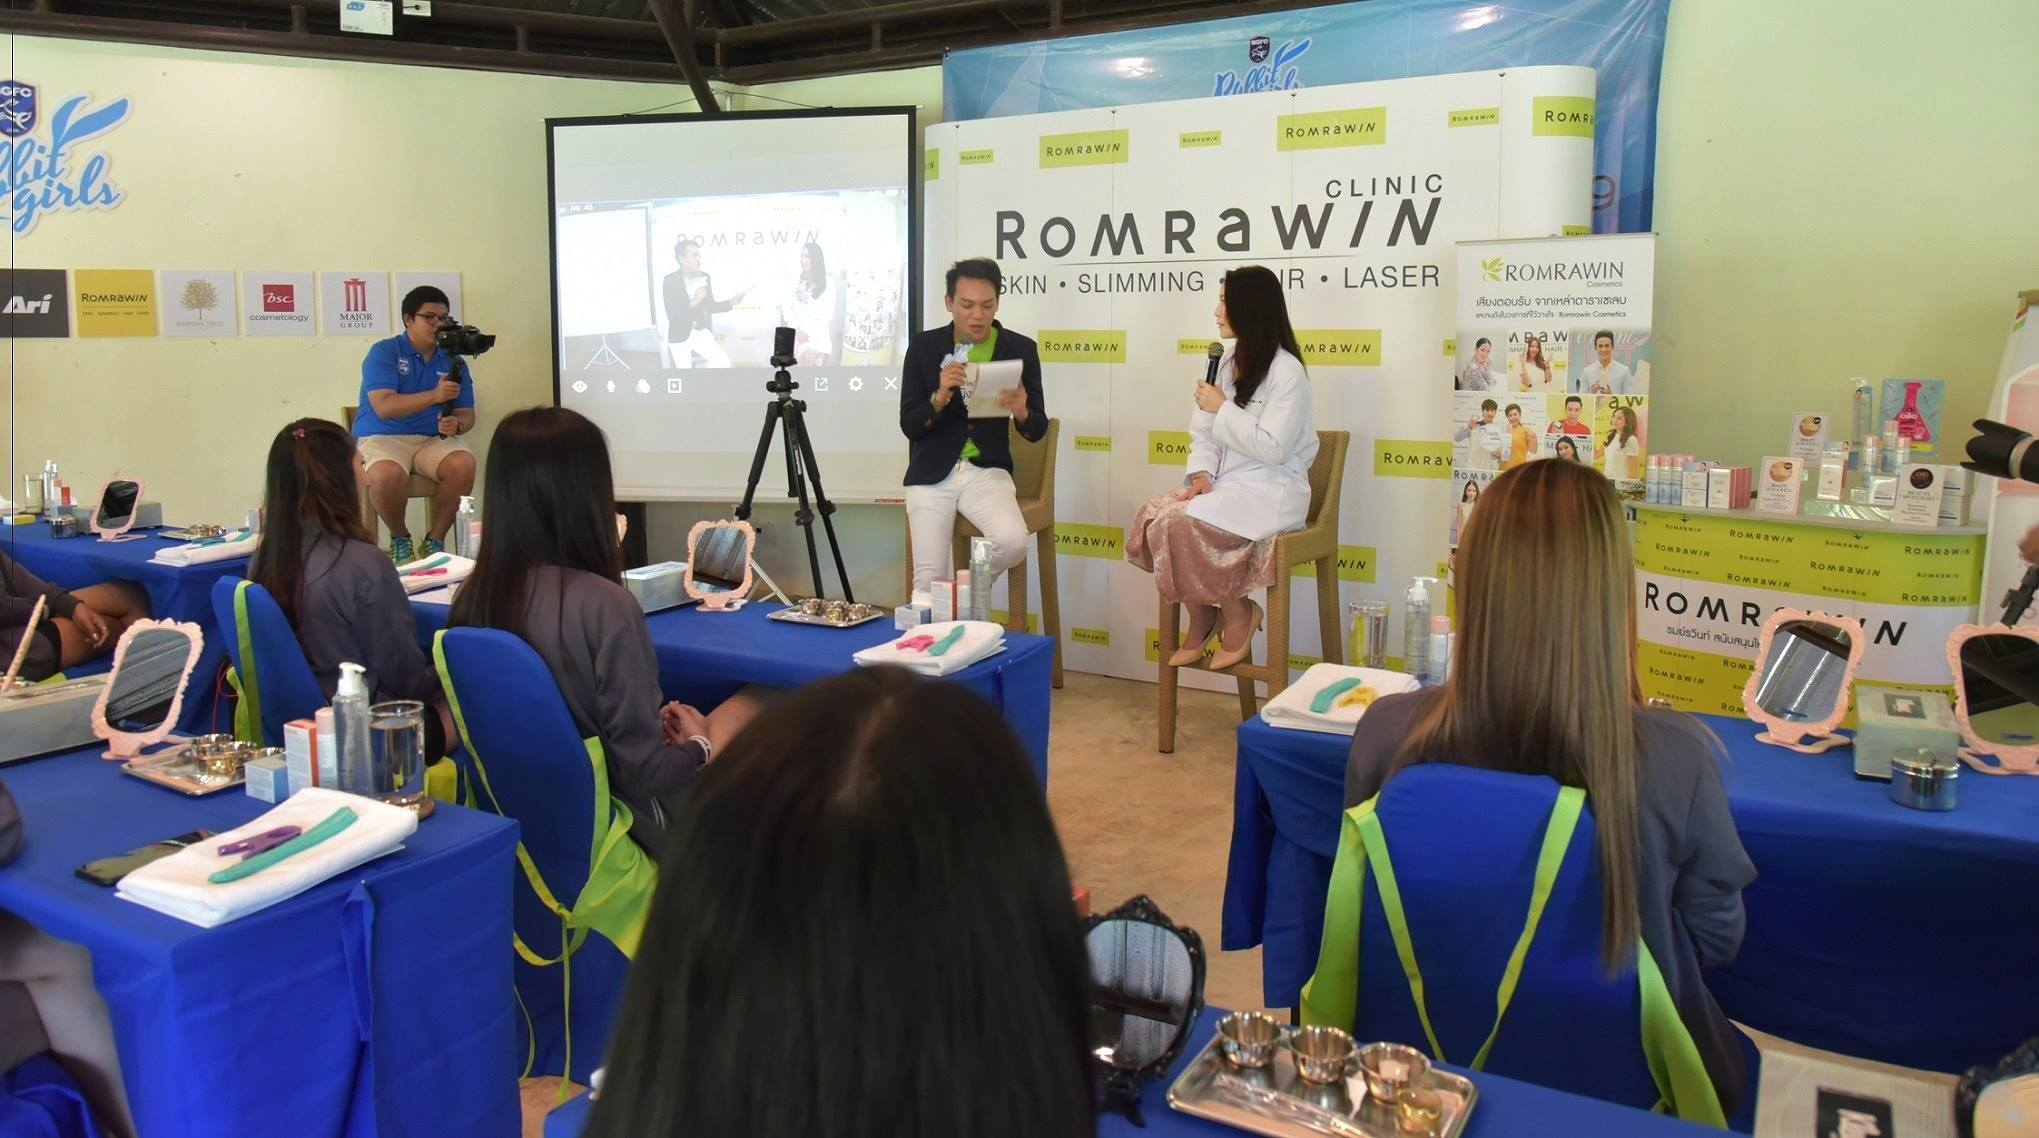 Aura Bright Skin Workshop with Romrawin 2019